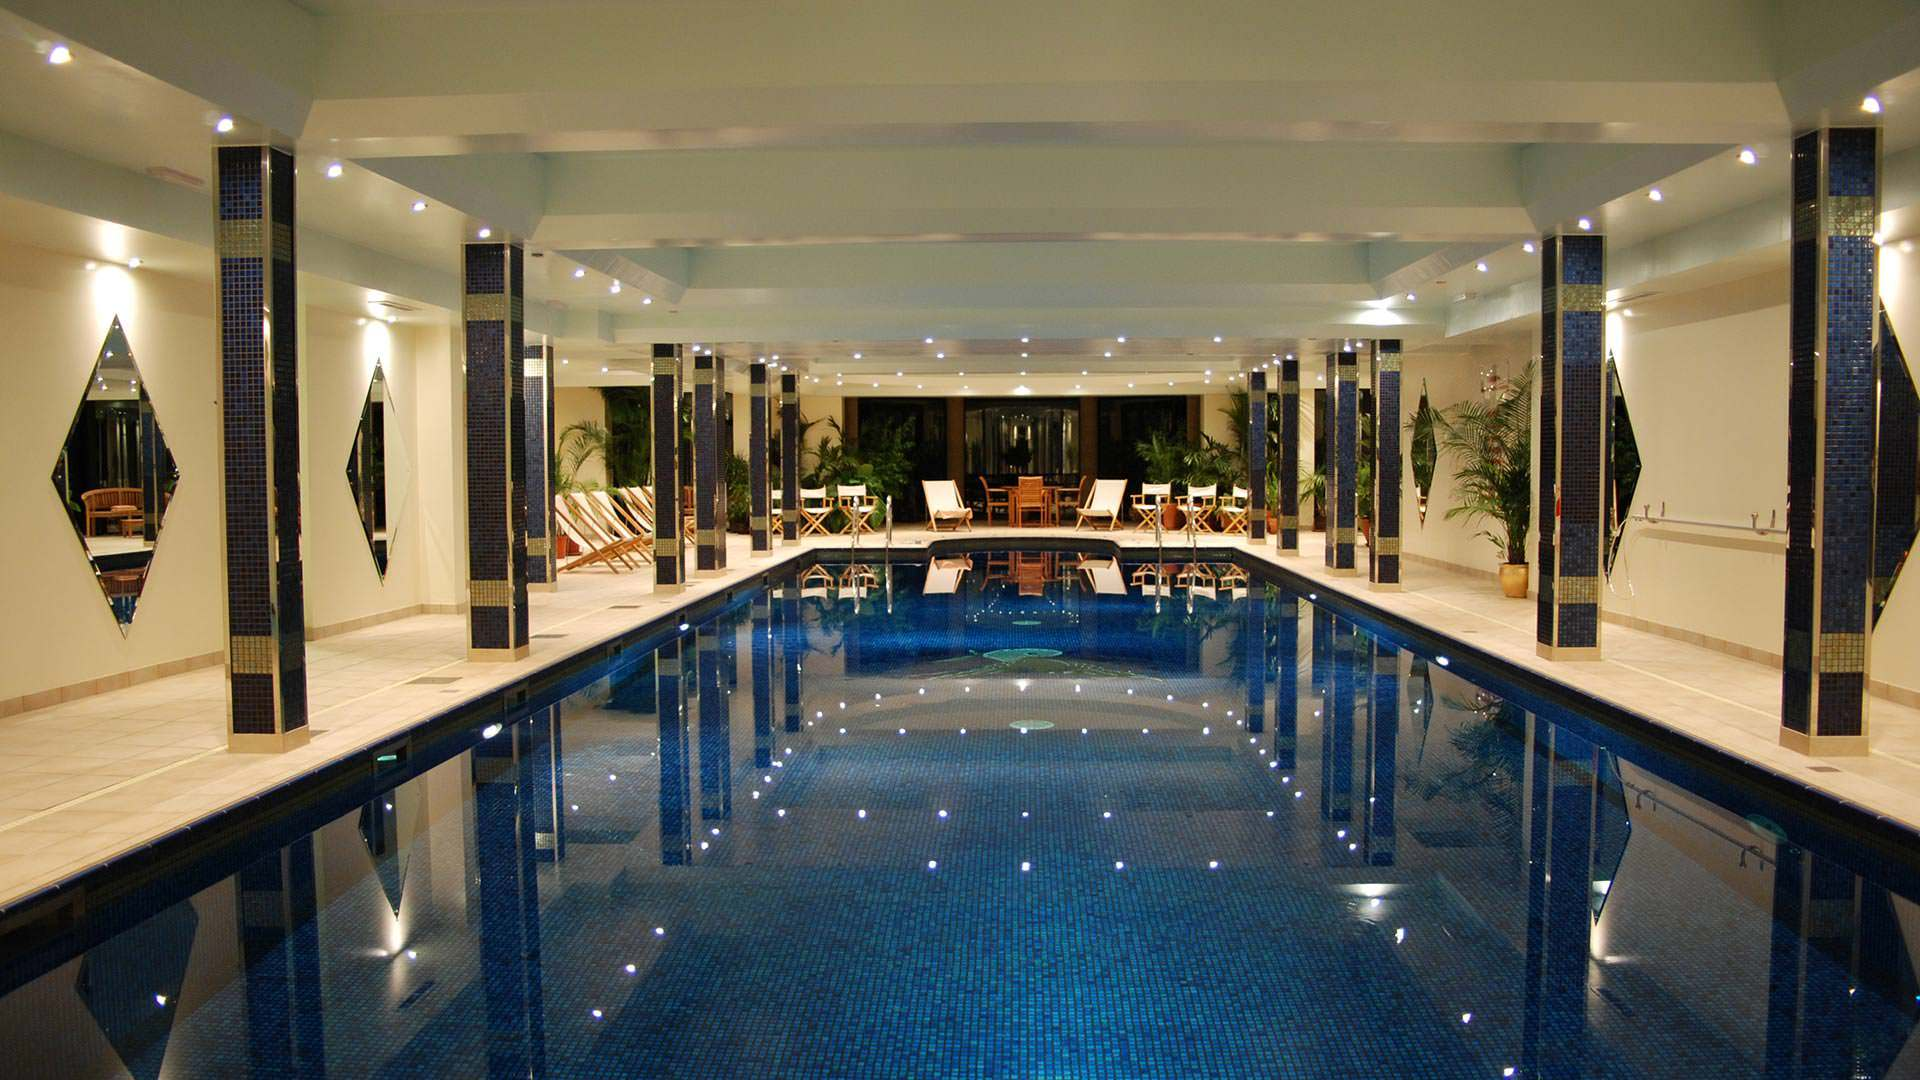 Bovey castle hotel luxury hotels devon pride of britain - Luxury scottish hotels with swimming pools ...